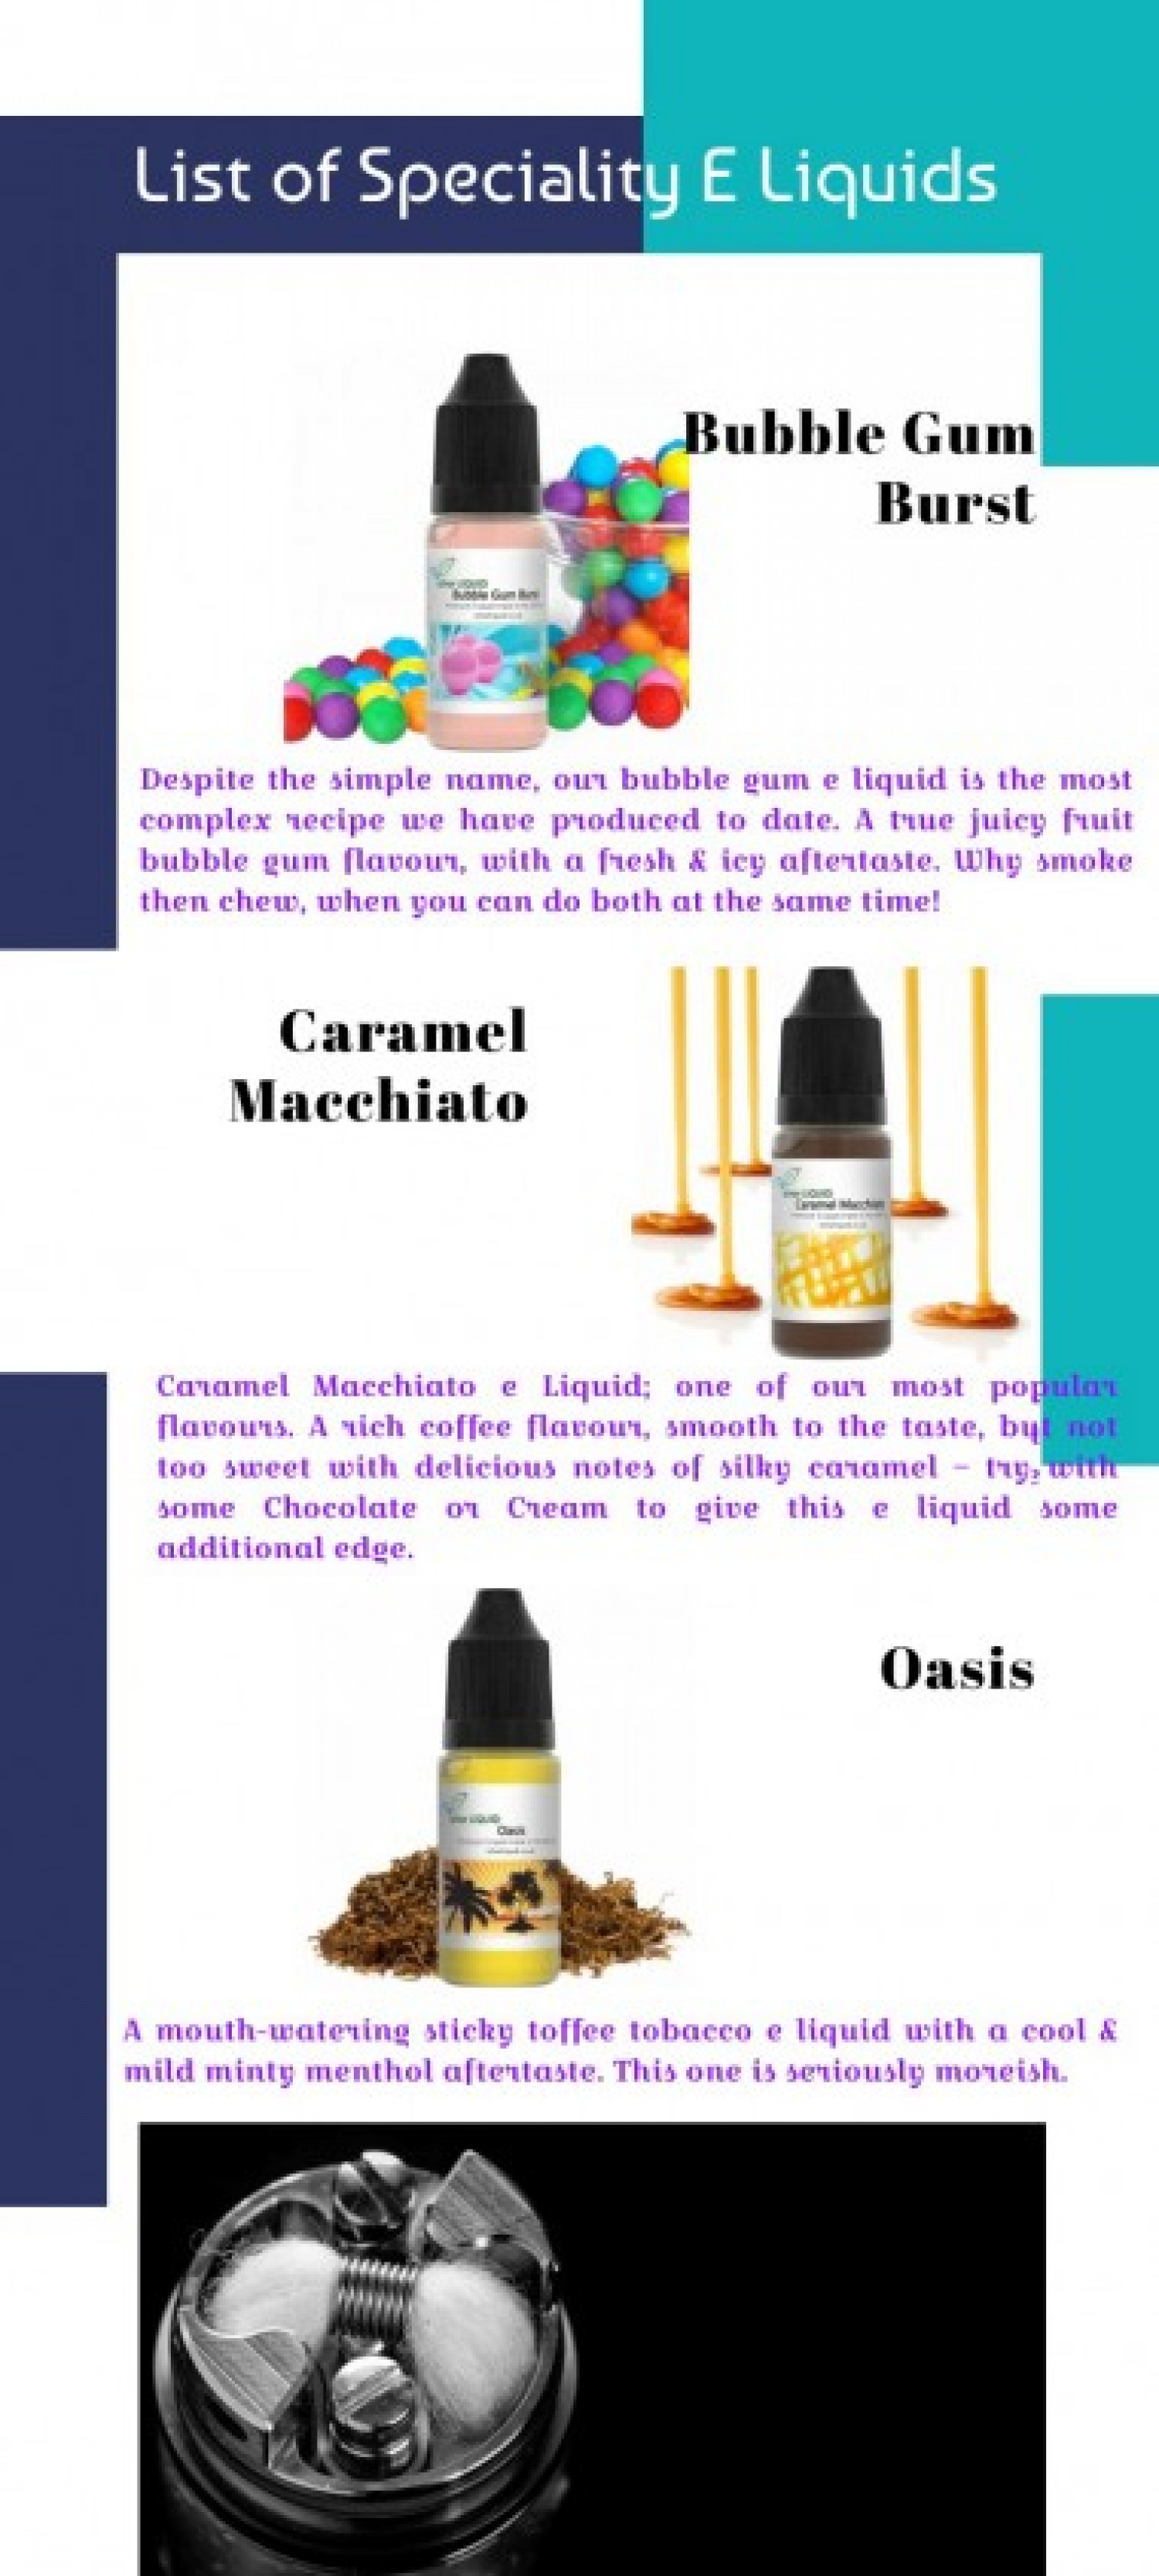 Specialty E liquid | 100% VG E Juices Made in the UK Infographic